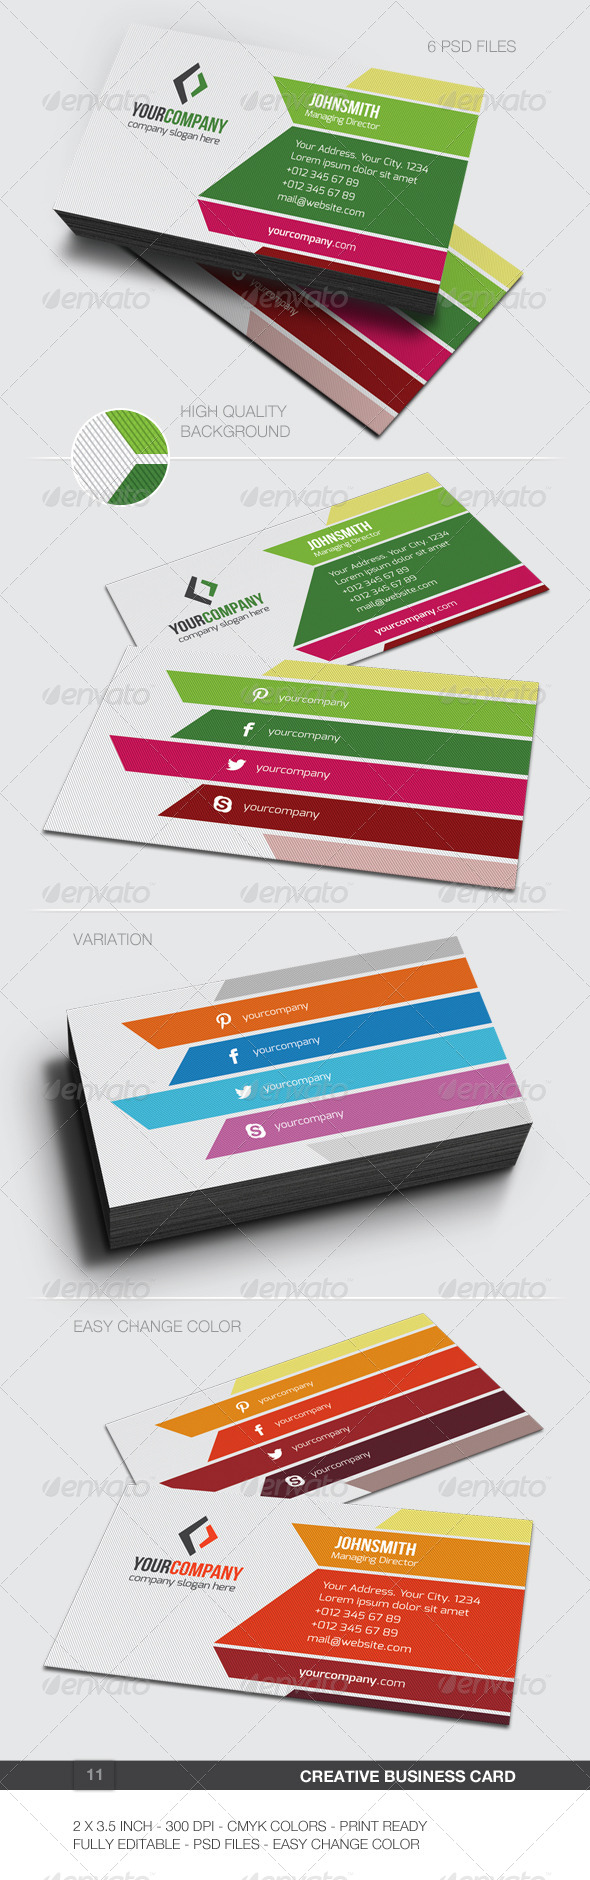 GraphicRiver Creative Business Card 11 5988956